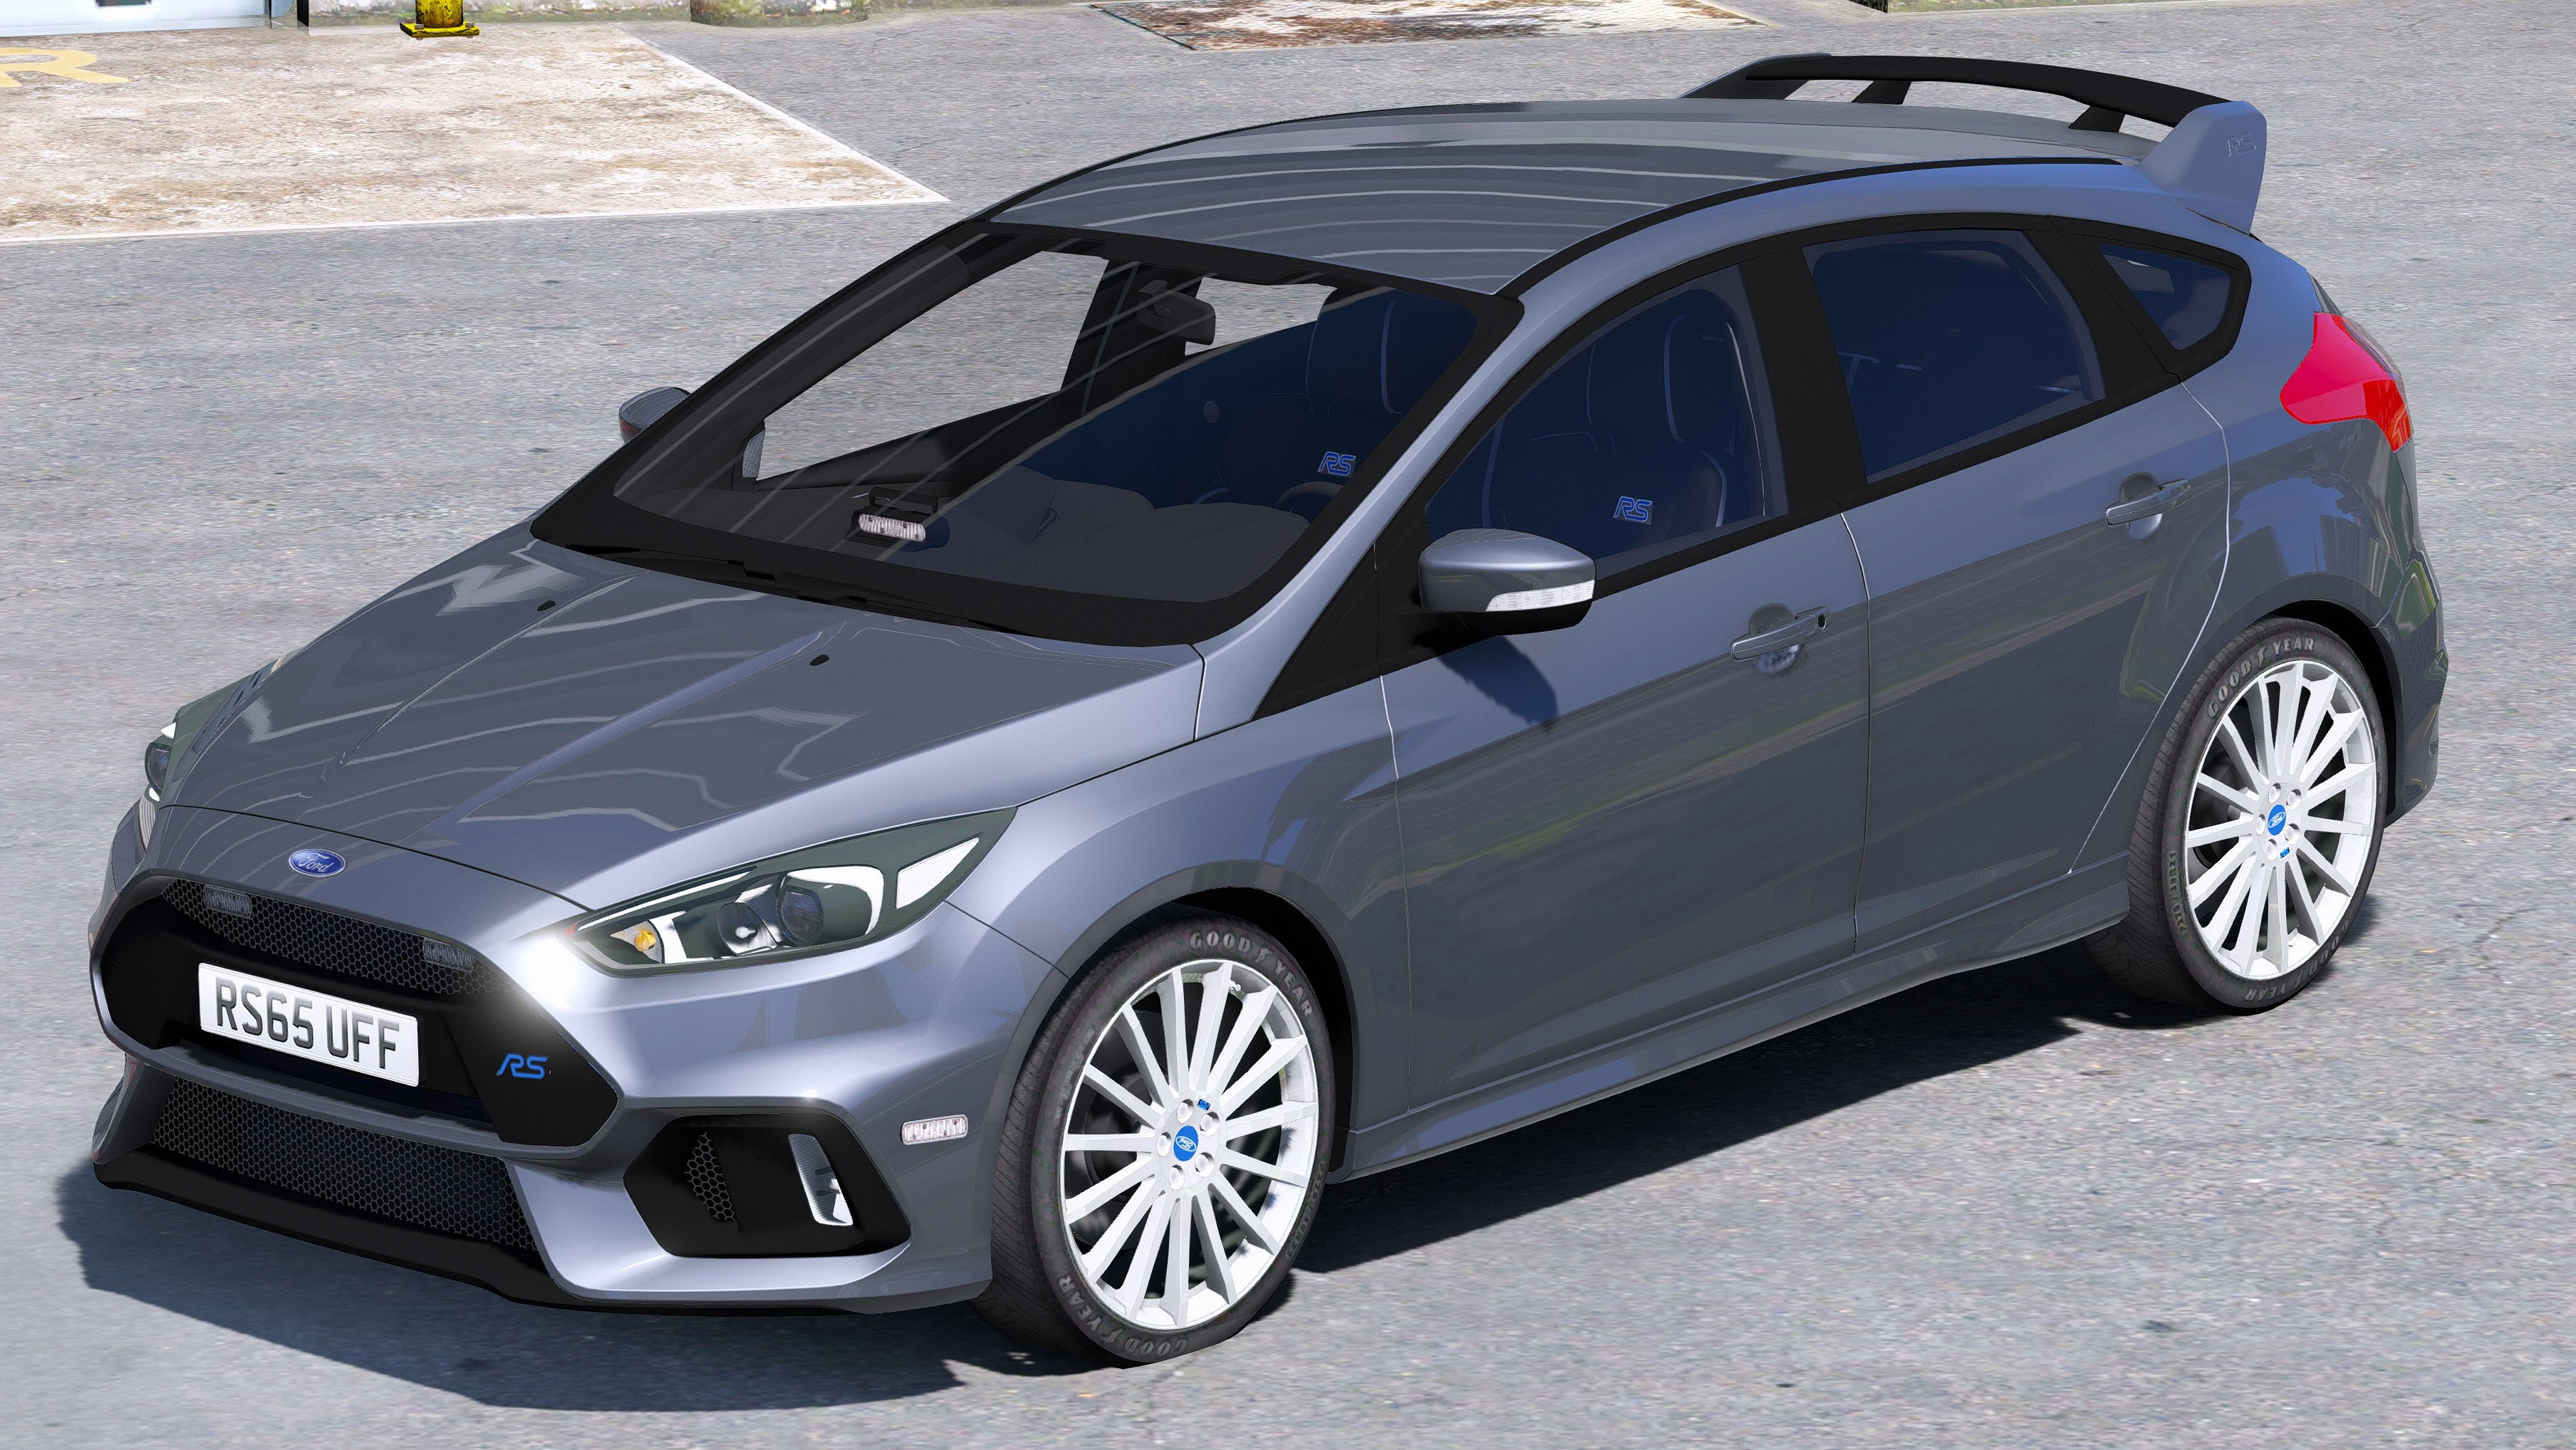 2019 Ford Focus RS500 photo - 2